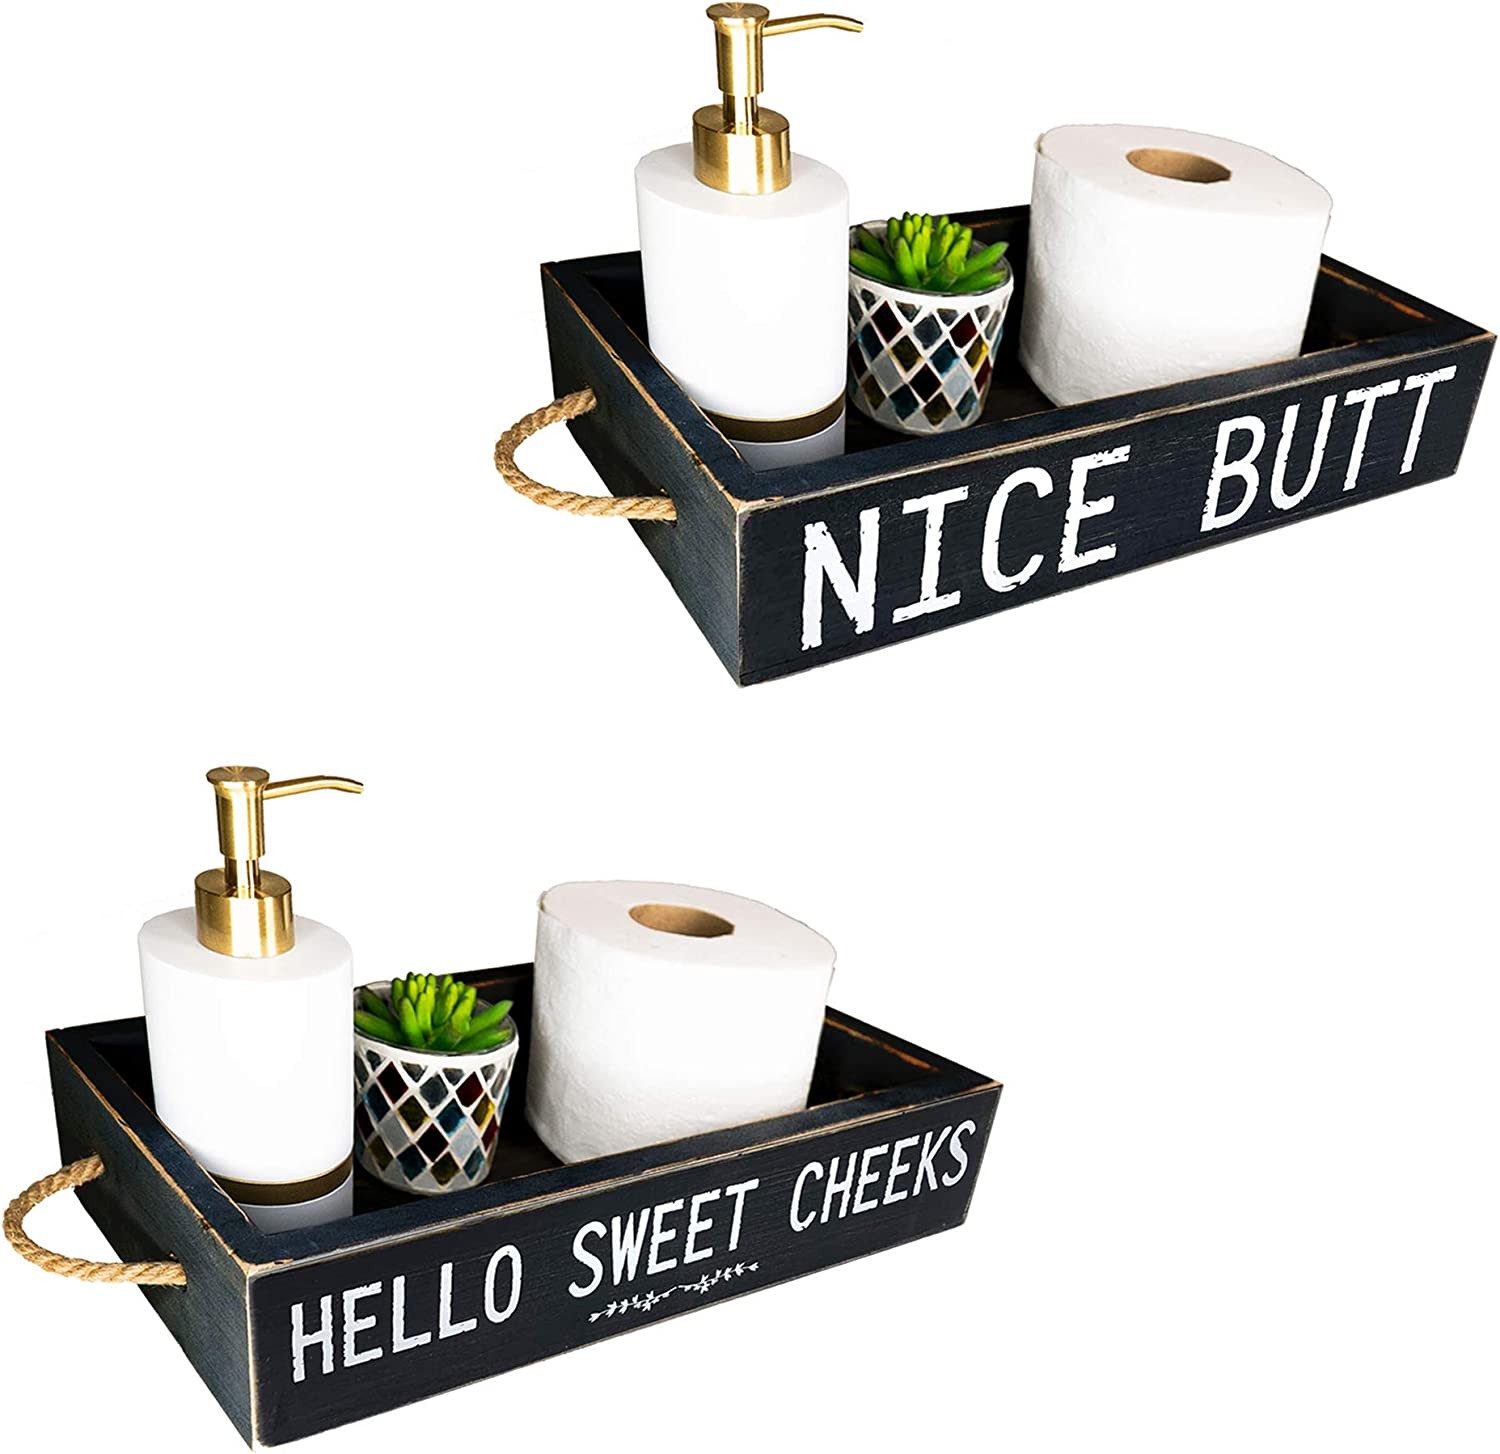 Nice Butt Bathroom Decor Box, 2 Sides with Funny Sayings -Perfect for Farmhouse Bathroom Decor, Rustic Bathroom Decor, Funny Toilet Paper Holder -Toilet Paper Storage, Bathroom Signs (Black)